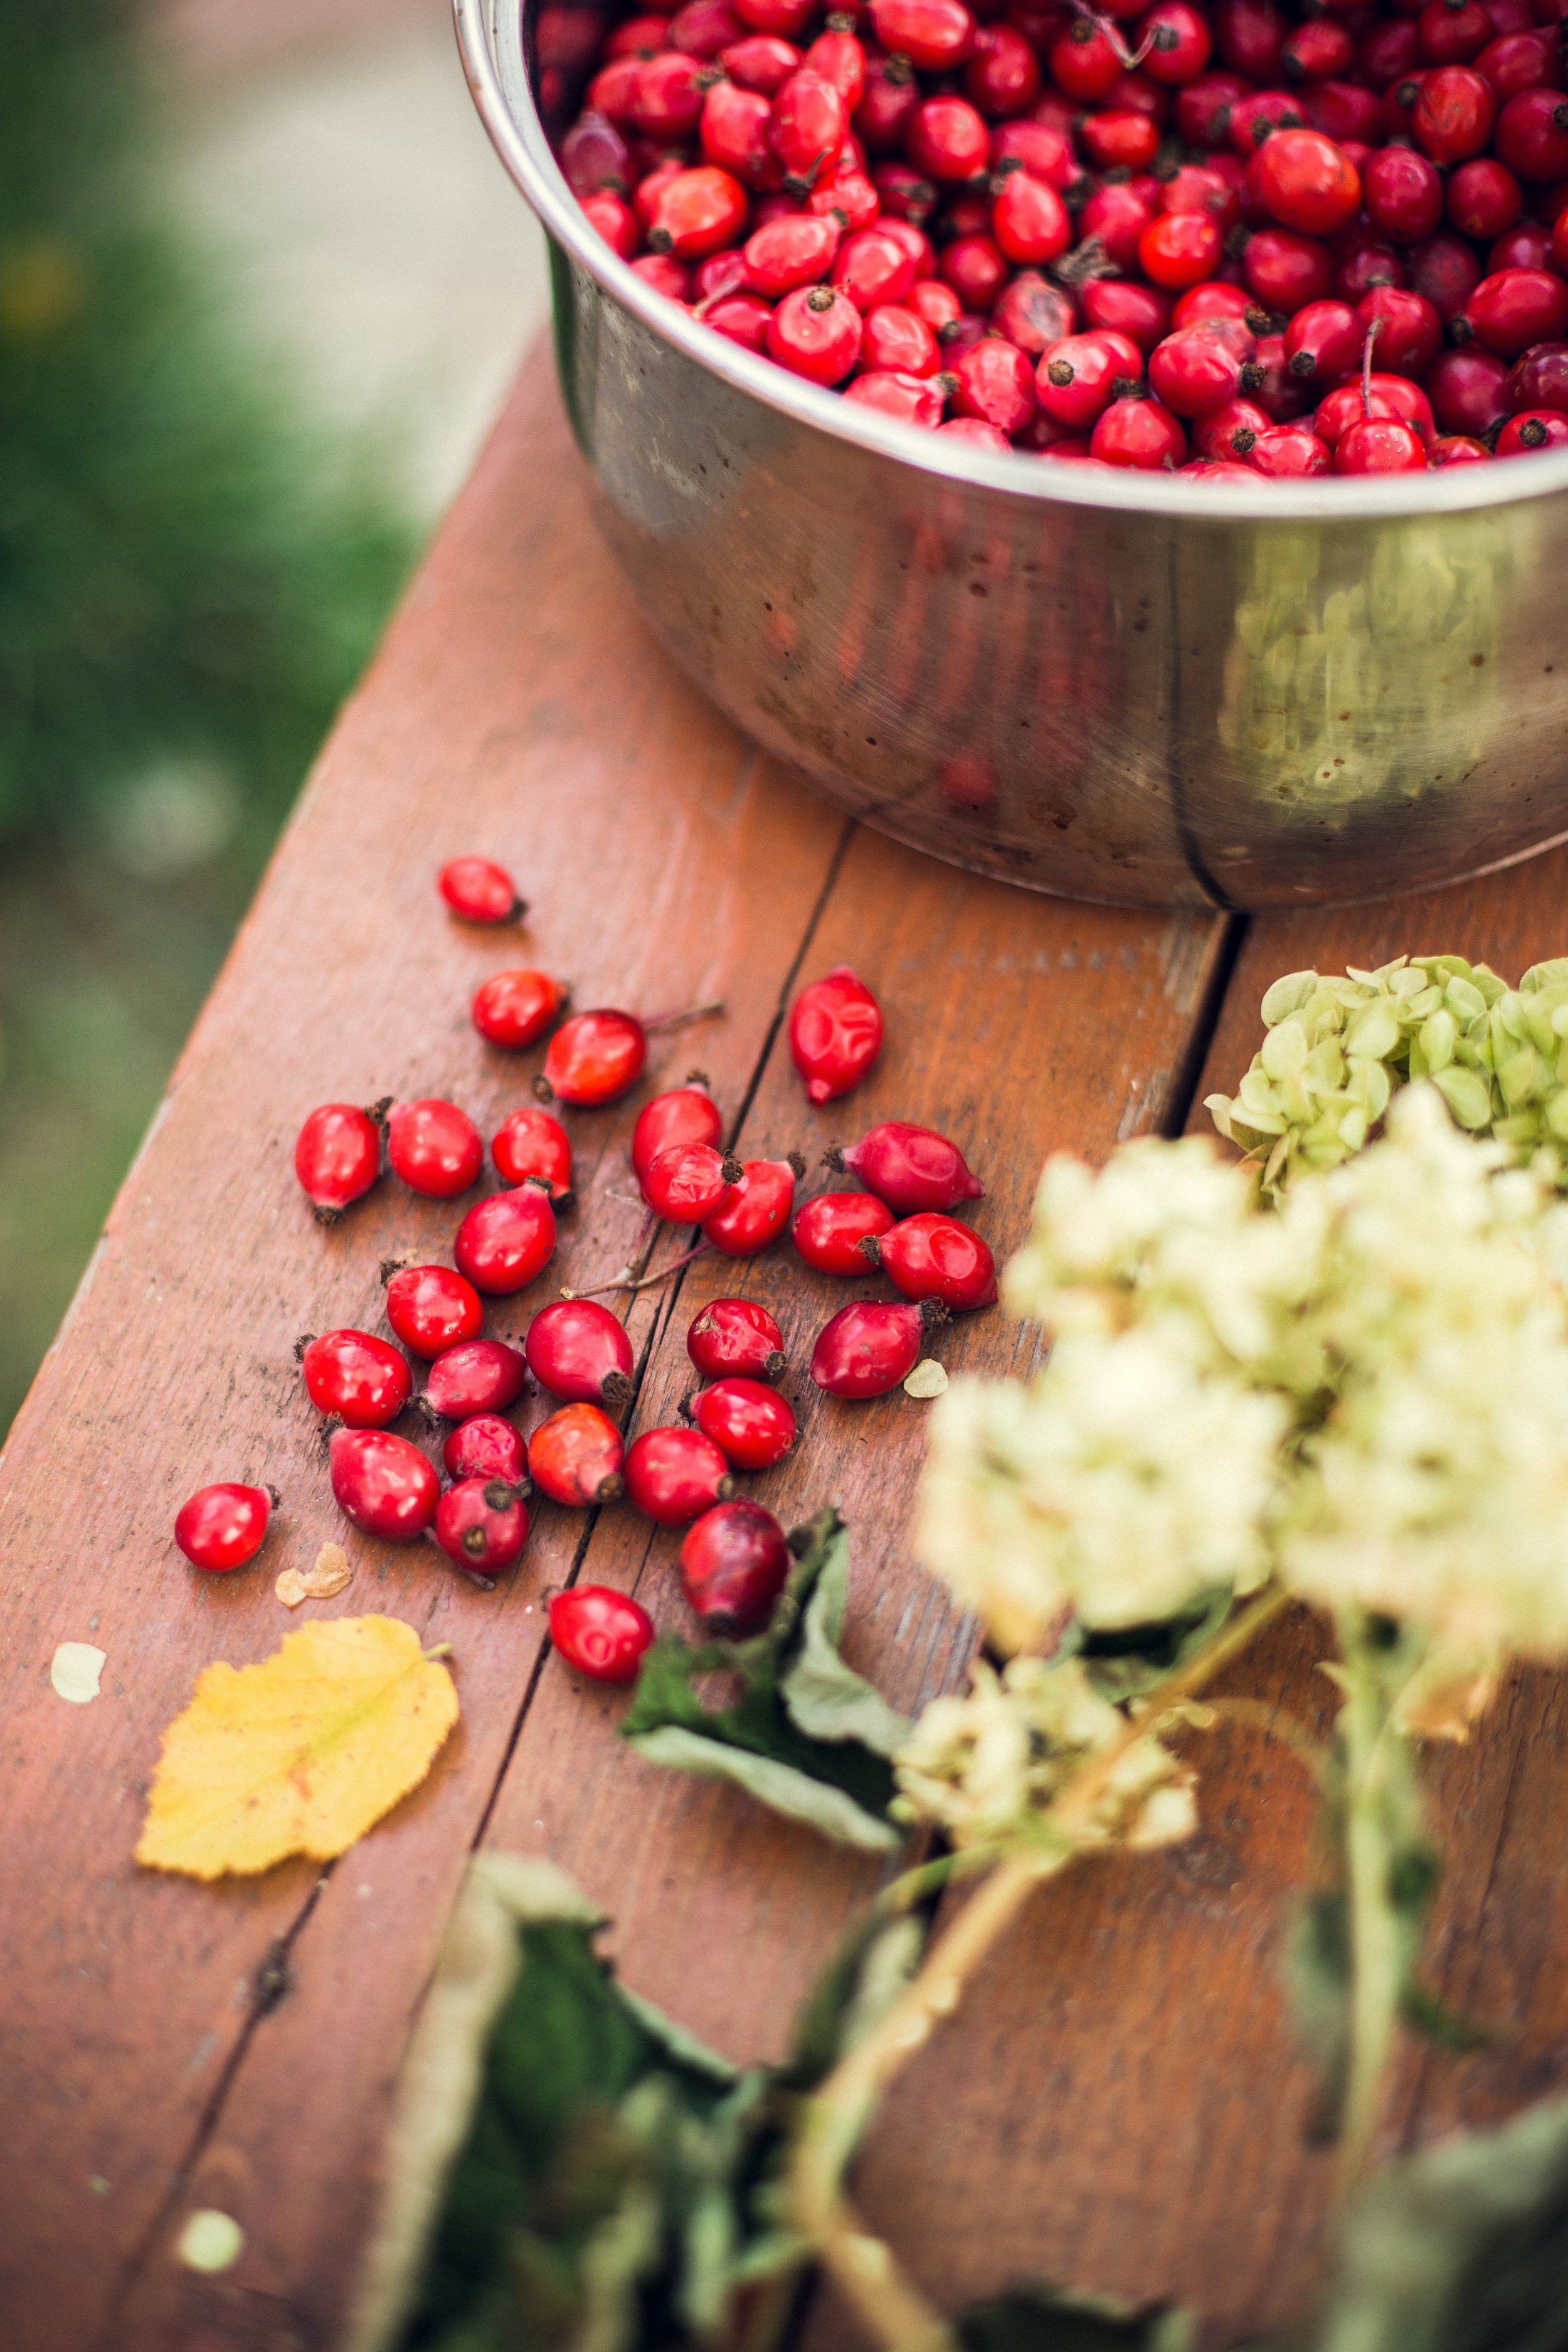 Rosehip Oil - is derived from the Rosa Canina bush where the oil is extracted directly from the fruit & seeds. It has multiple benefits when put directly onto the skin. We like to specifically use it on the face.Here's why:+ helps reduce fine lines & scars+ boosts collagen production+ hydrates & moisturizes+ promotes skin regeneration(bye, bye, acne scars!)+ prevents blemishes & acne+ reduces inflammation caused by eczema, rosacea, etc.+ protects against sun damageHave we convinced you yet? Try it out. Put it on every night after washing your face & using toner.HU approved Brands: Radha Beauty, Kate Blanc